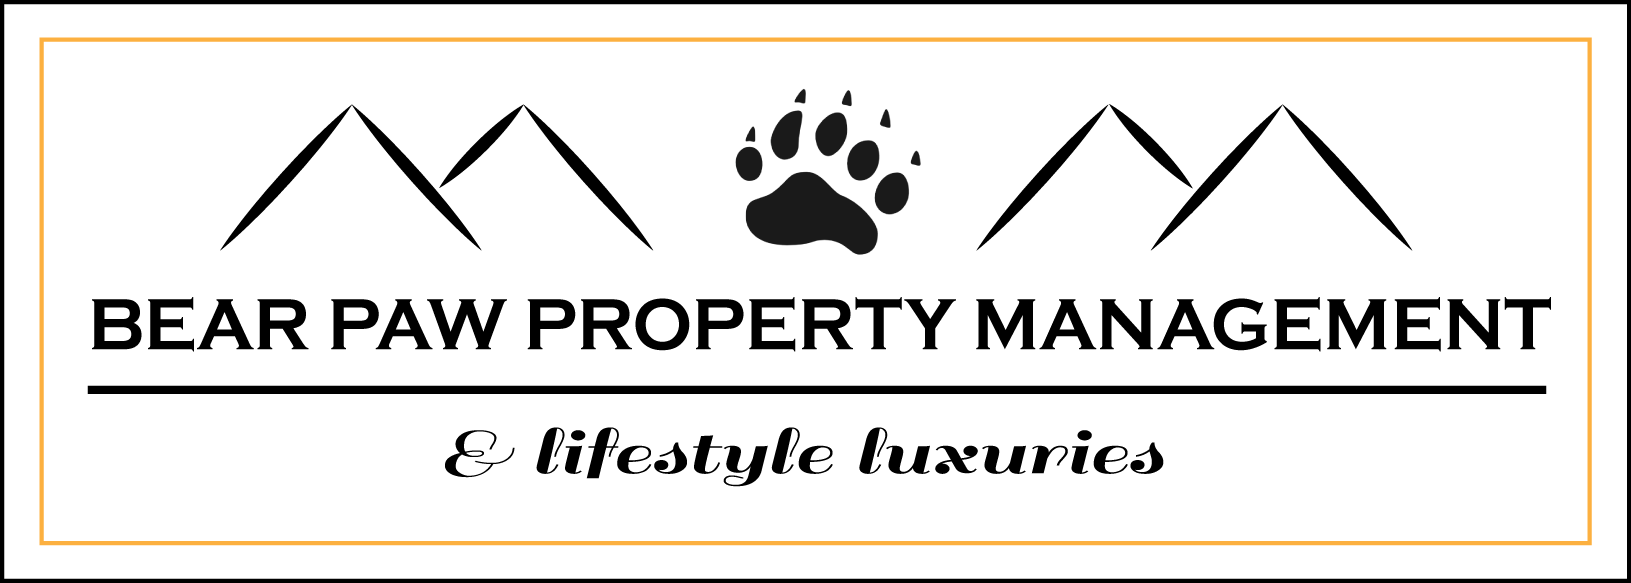 Bear Paw Property Management